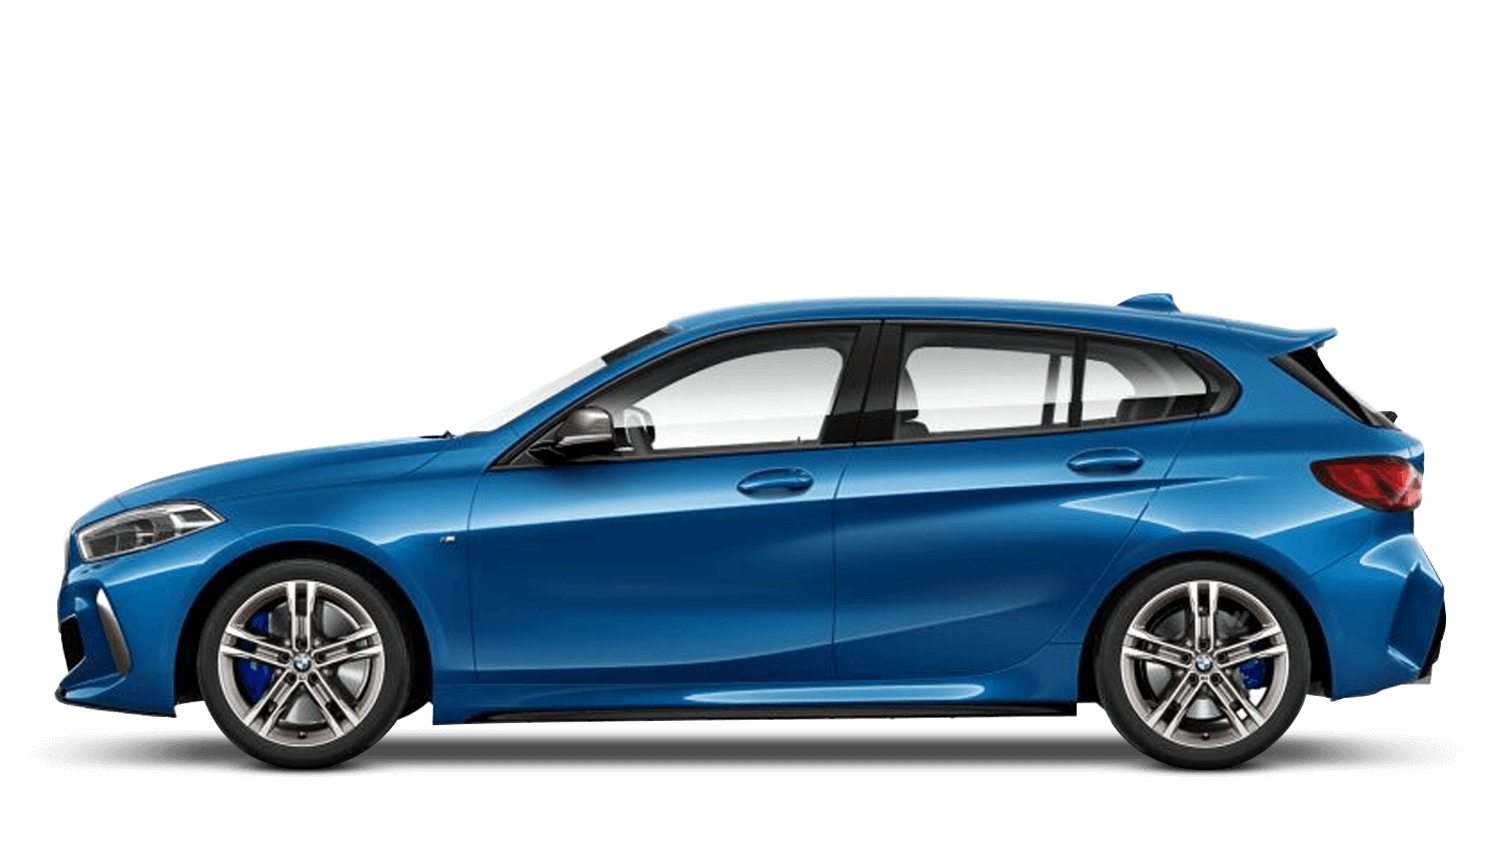 Misano Blue (Metallic) BMW 1 Series Sports Hatch